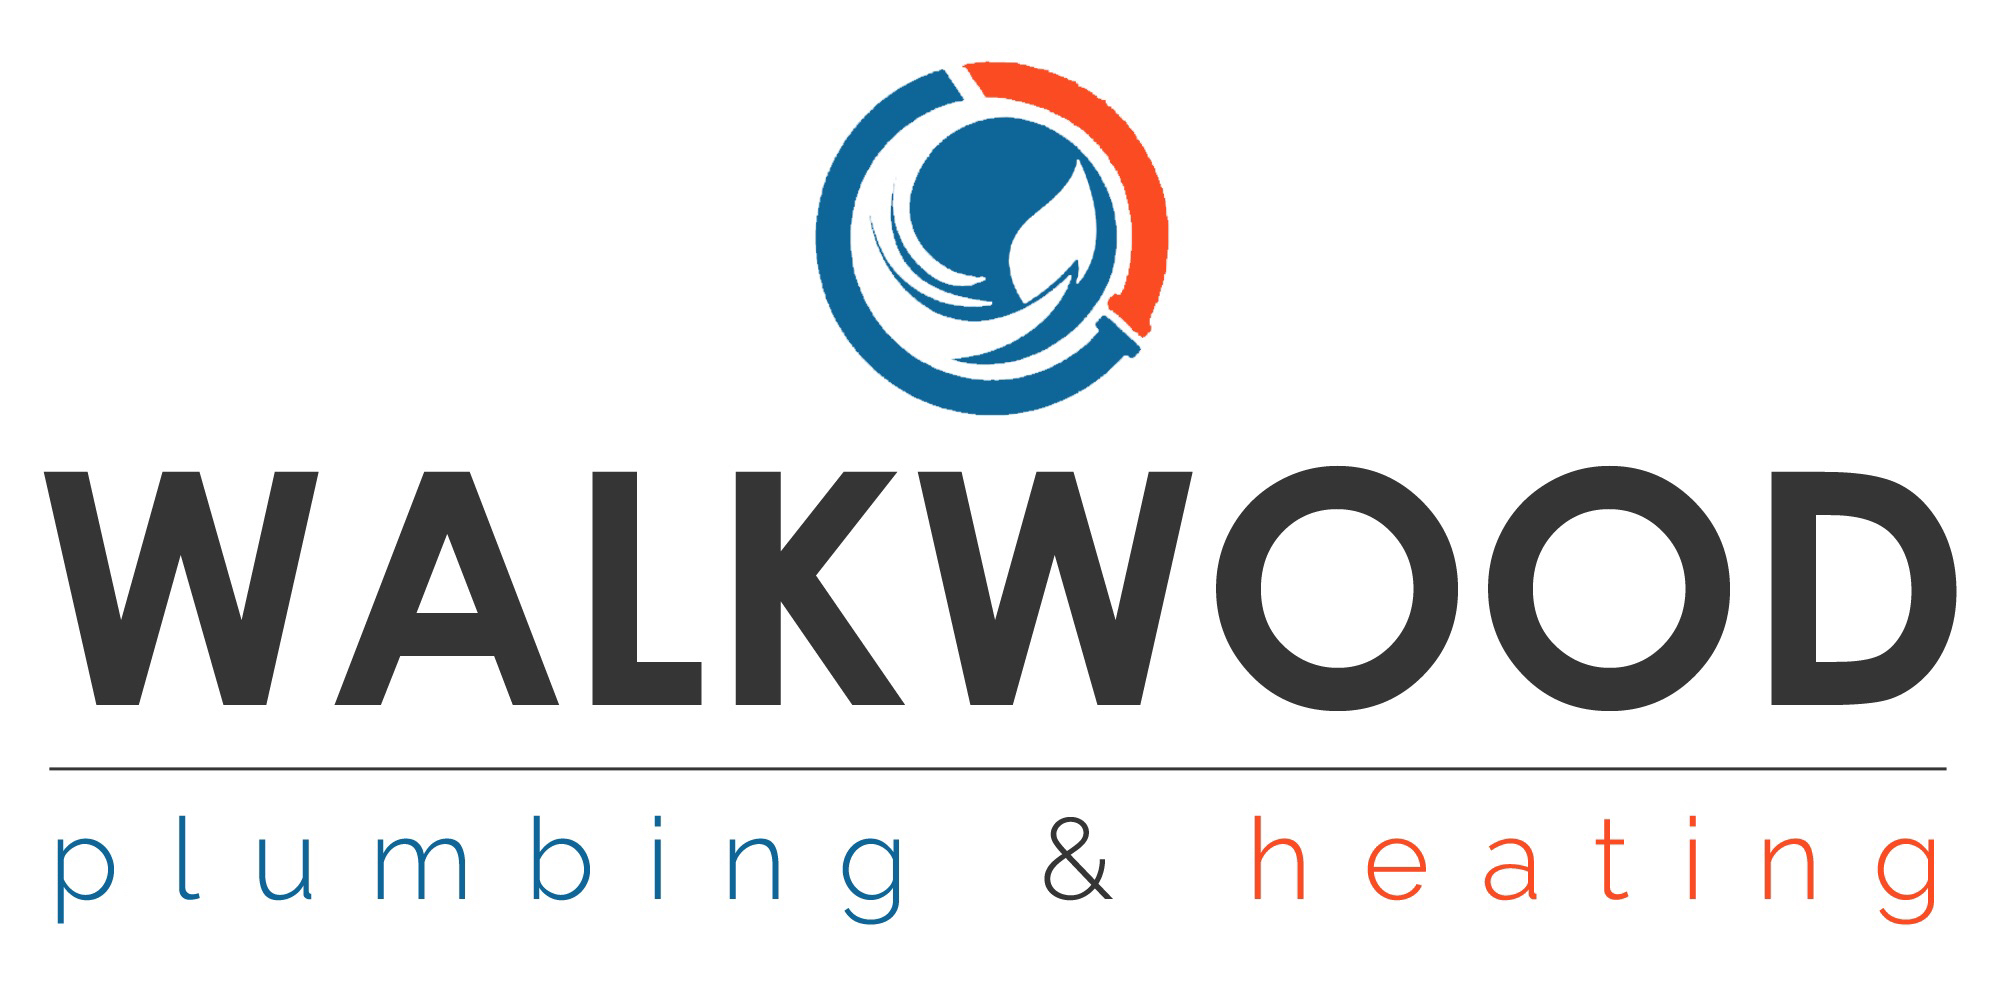 Walkwood plumbing & heating ltd Verified Logo